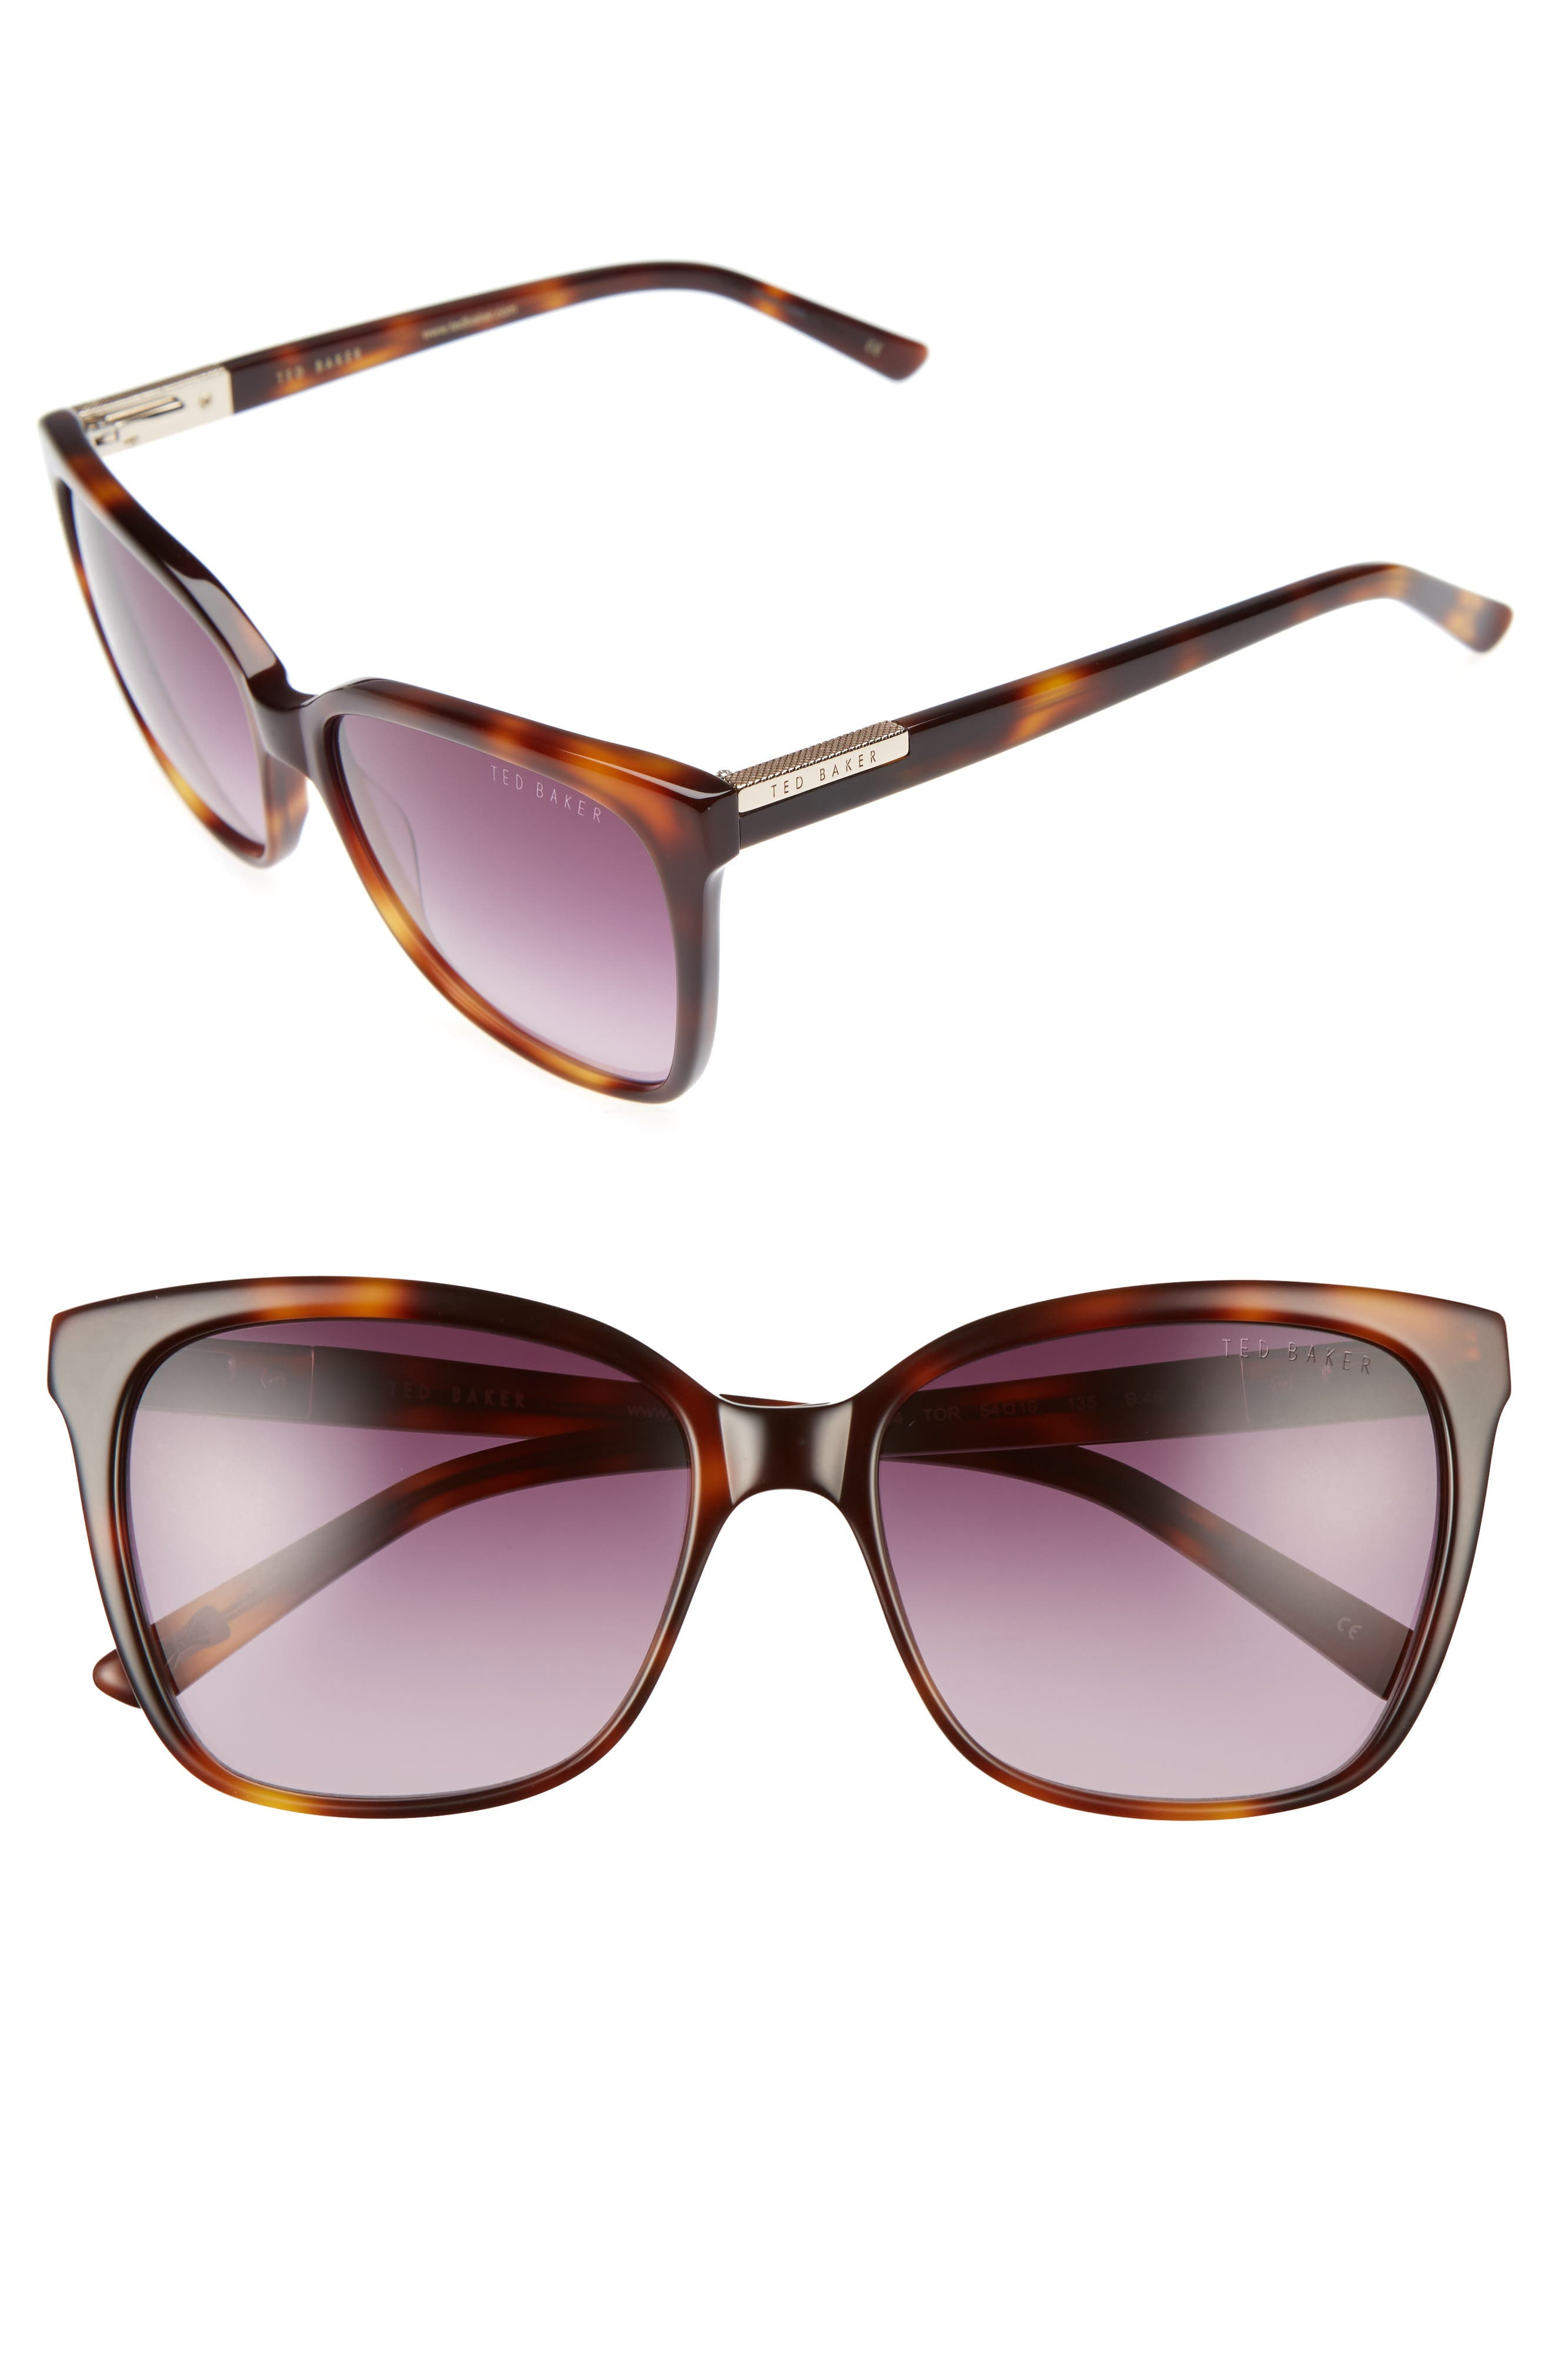 54mm Gradient Lens Square Sunglasses,                         Main,                         color, Tortoise